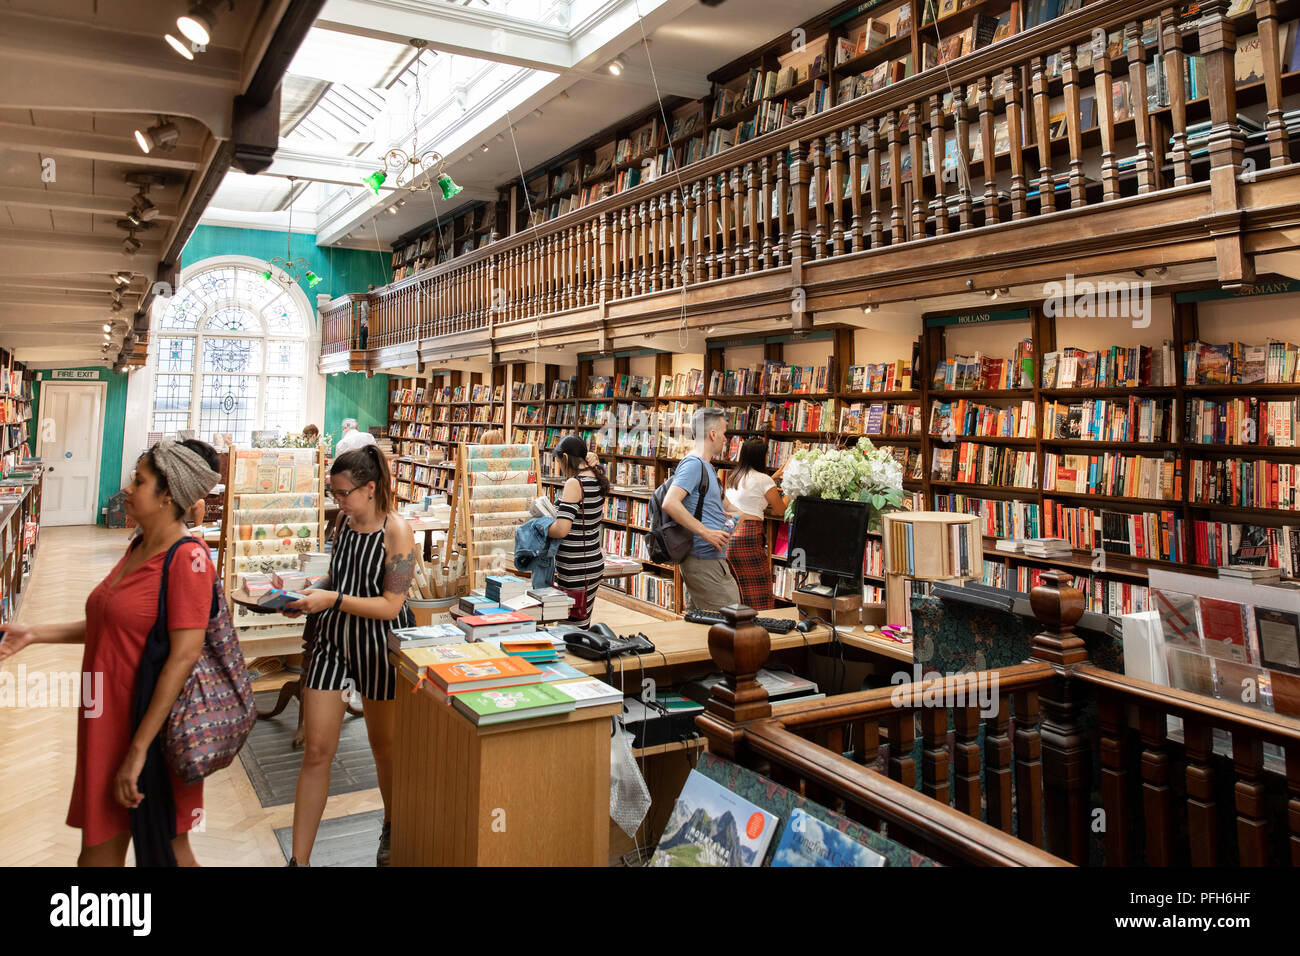 Daunt book store in Marylebone High Street, London - Stock Image